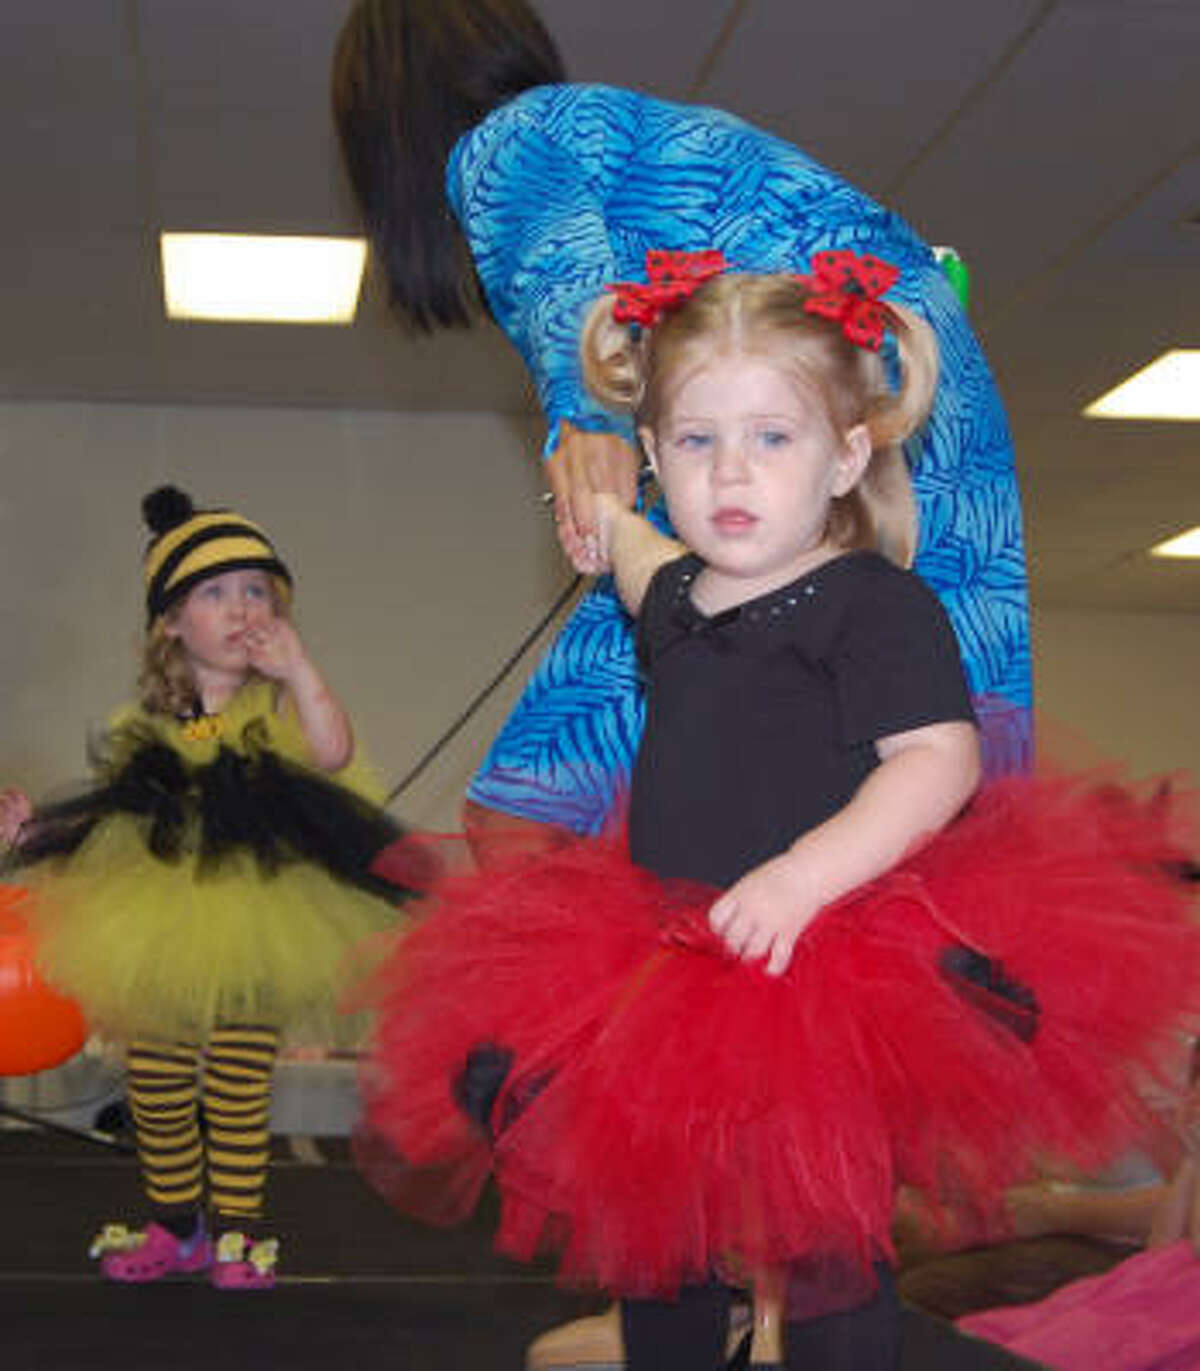 LAURA CENTER BENEFIT SHOW: A children's fall fashion show benefited the Laura Recovery Center Foundation. Karys Kinder, 2, back, is hesitant to head down the runway, but Julianne Melancon makes the route, headed straight for a strategically placed candy basket.